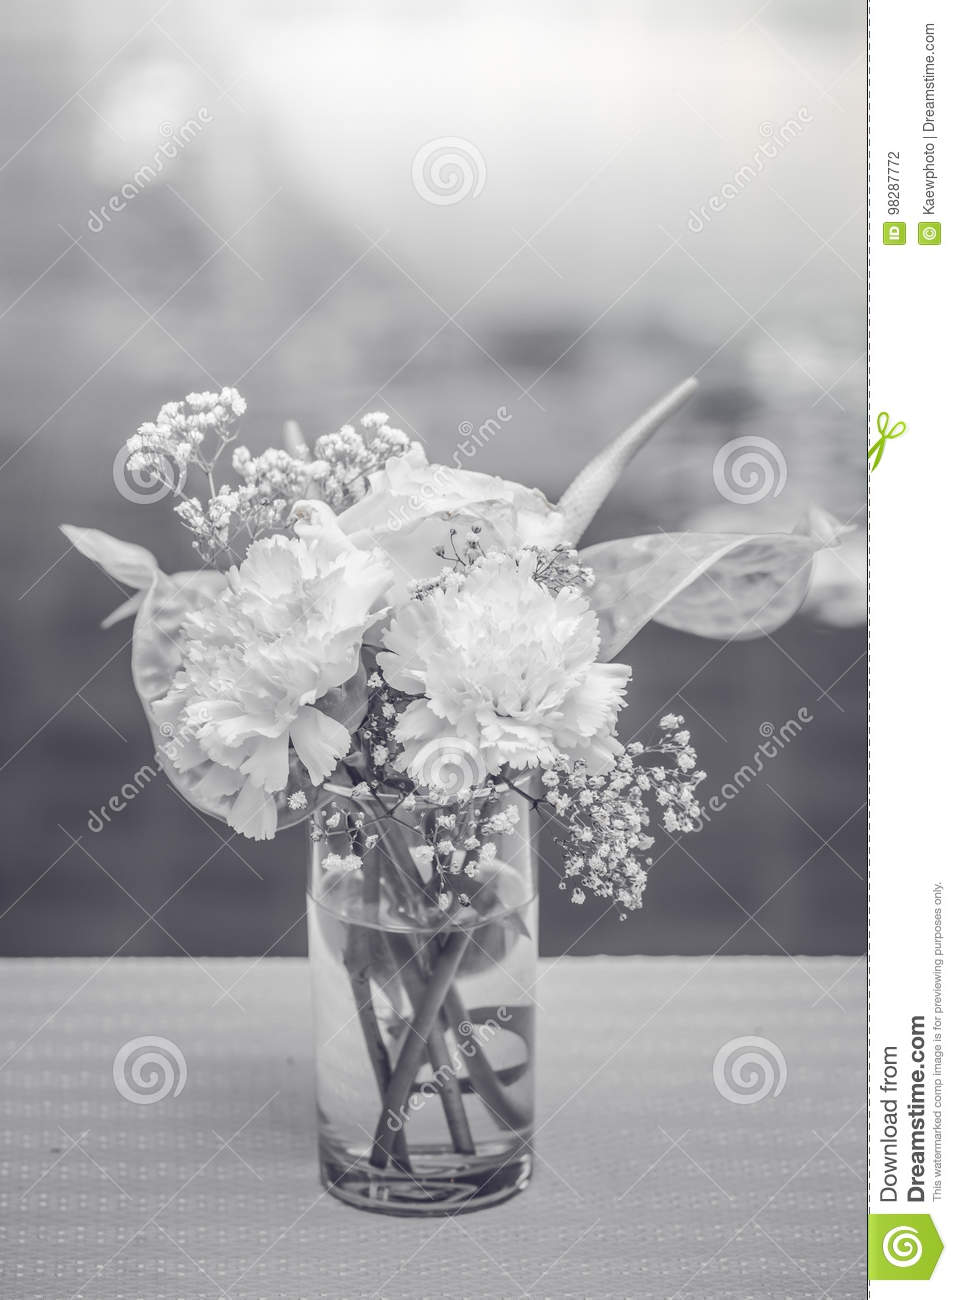 White Flowers In A Vase On The Coffee Table With A Black And Whi